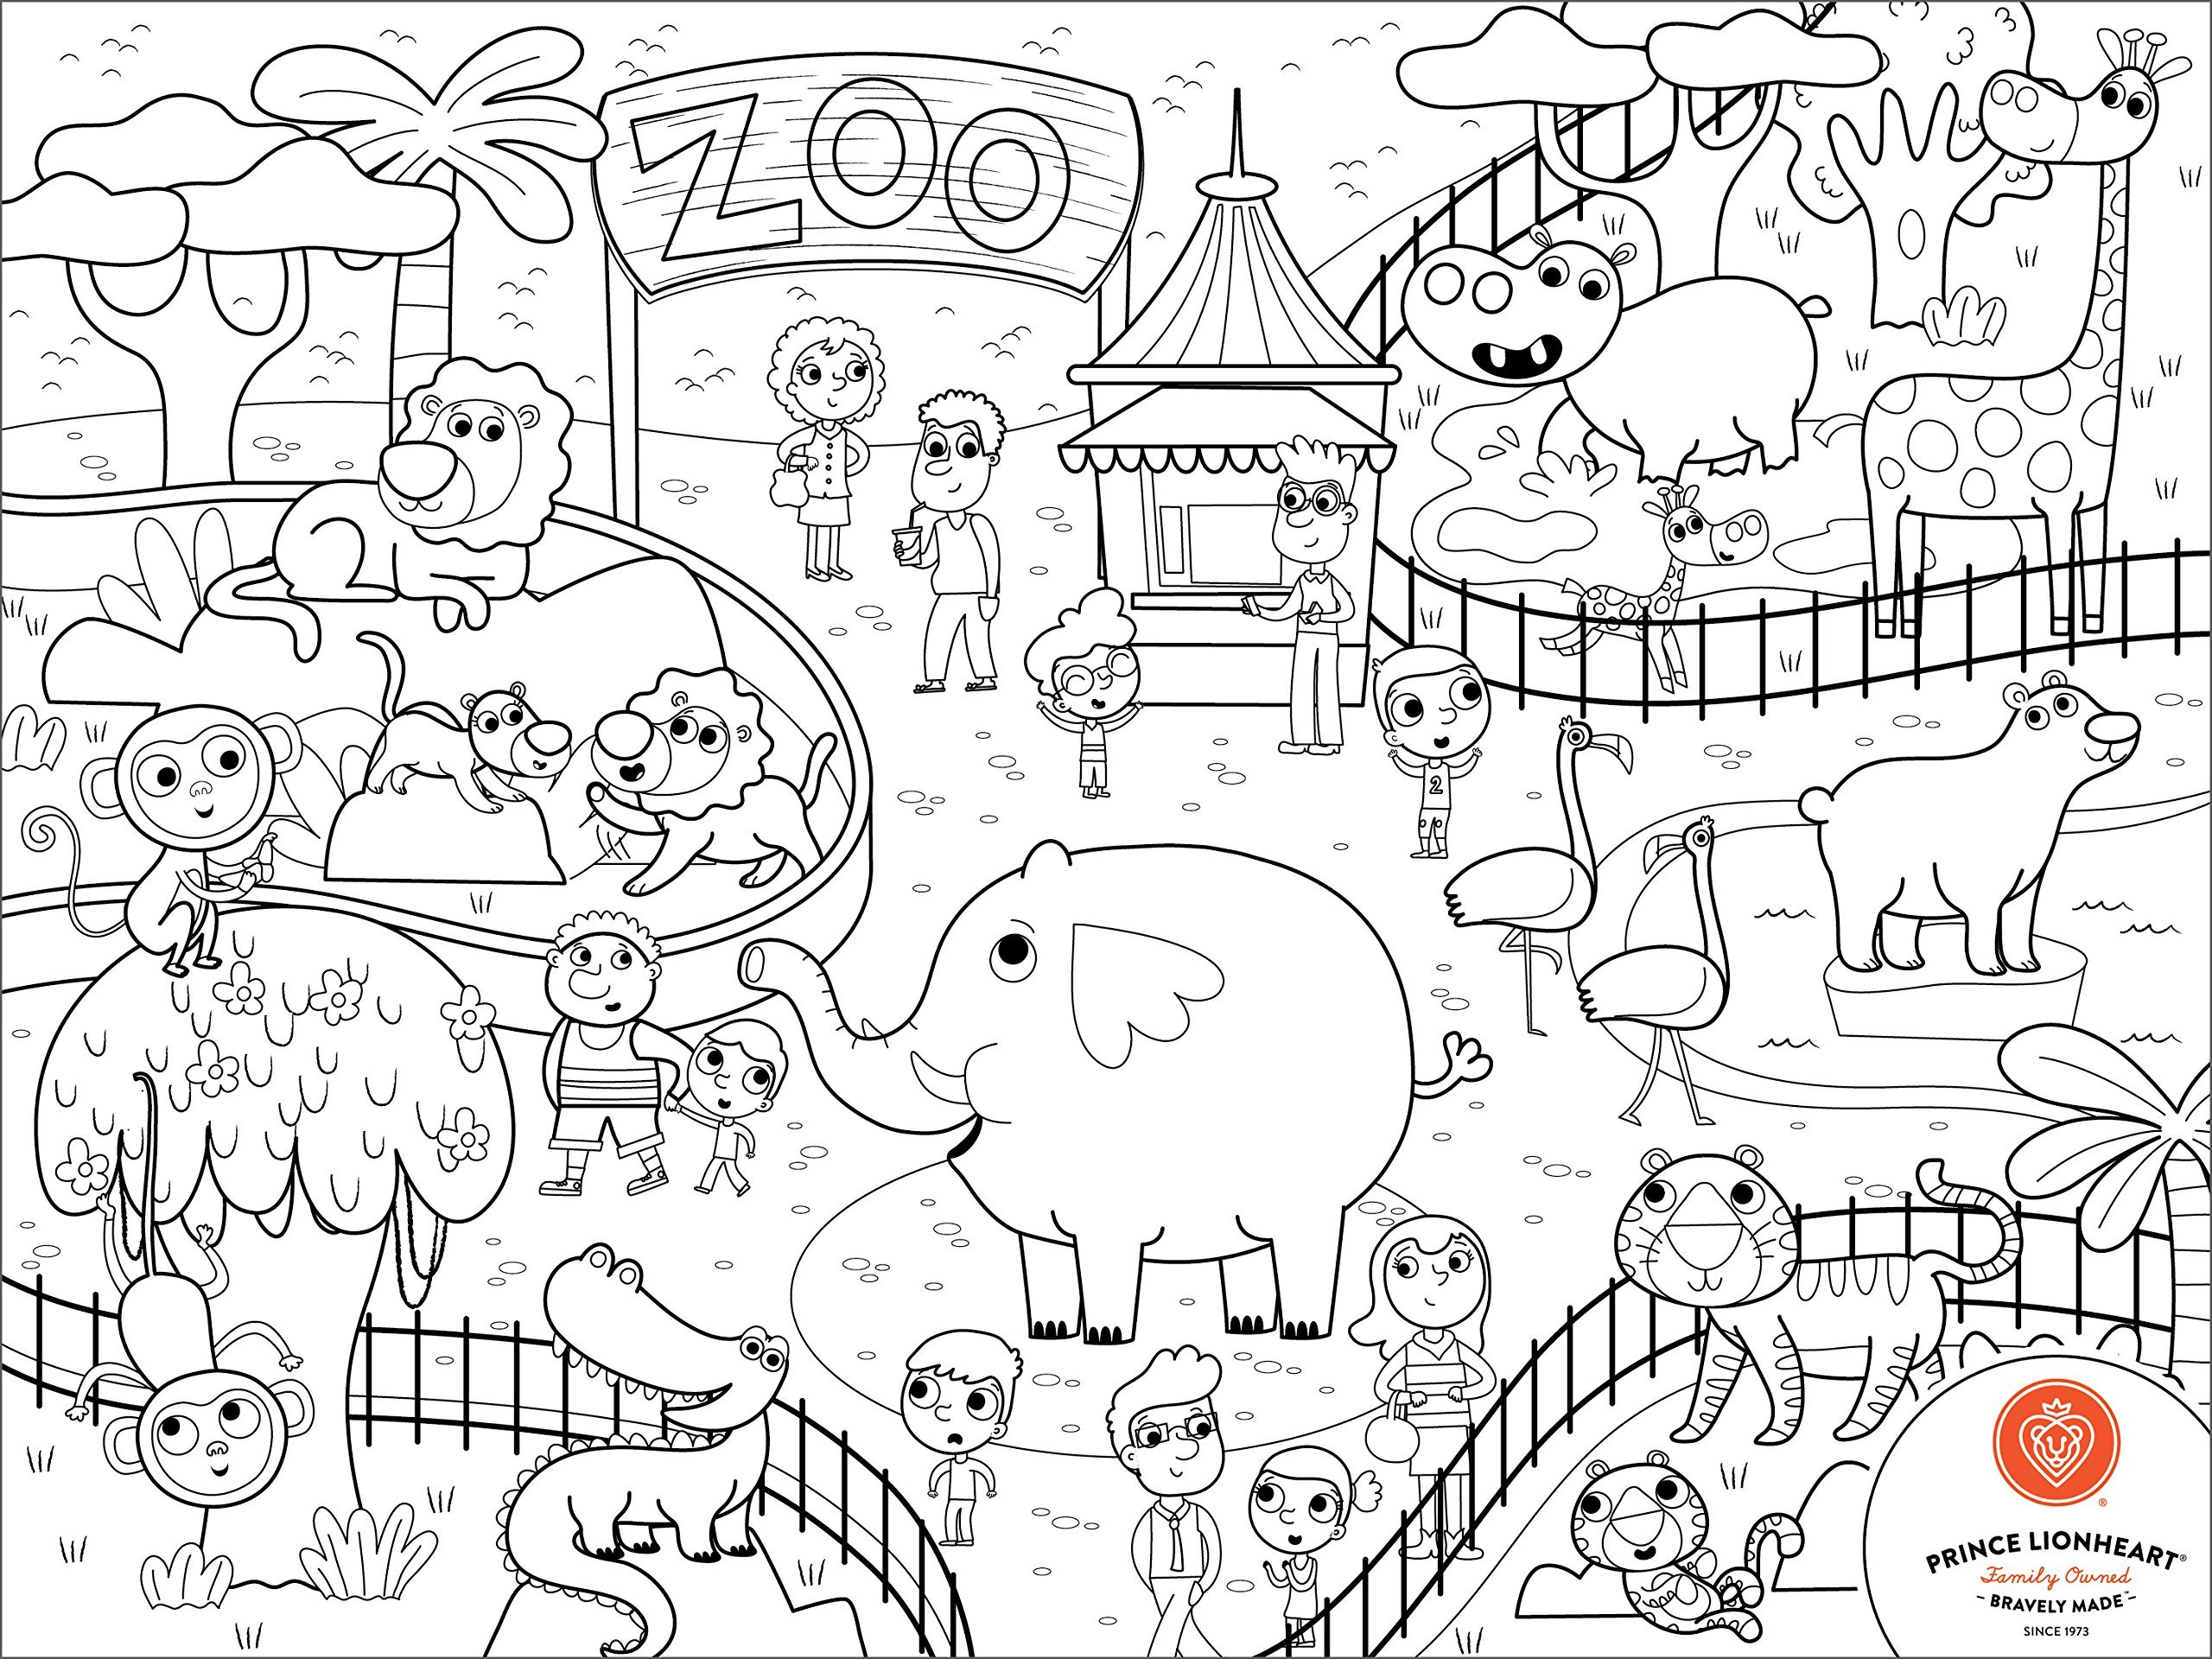 Prince Lionheart Color and Draw Reusable Silicone Placemat with Markers and Travel Sleeve, Zoo